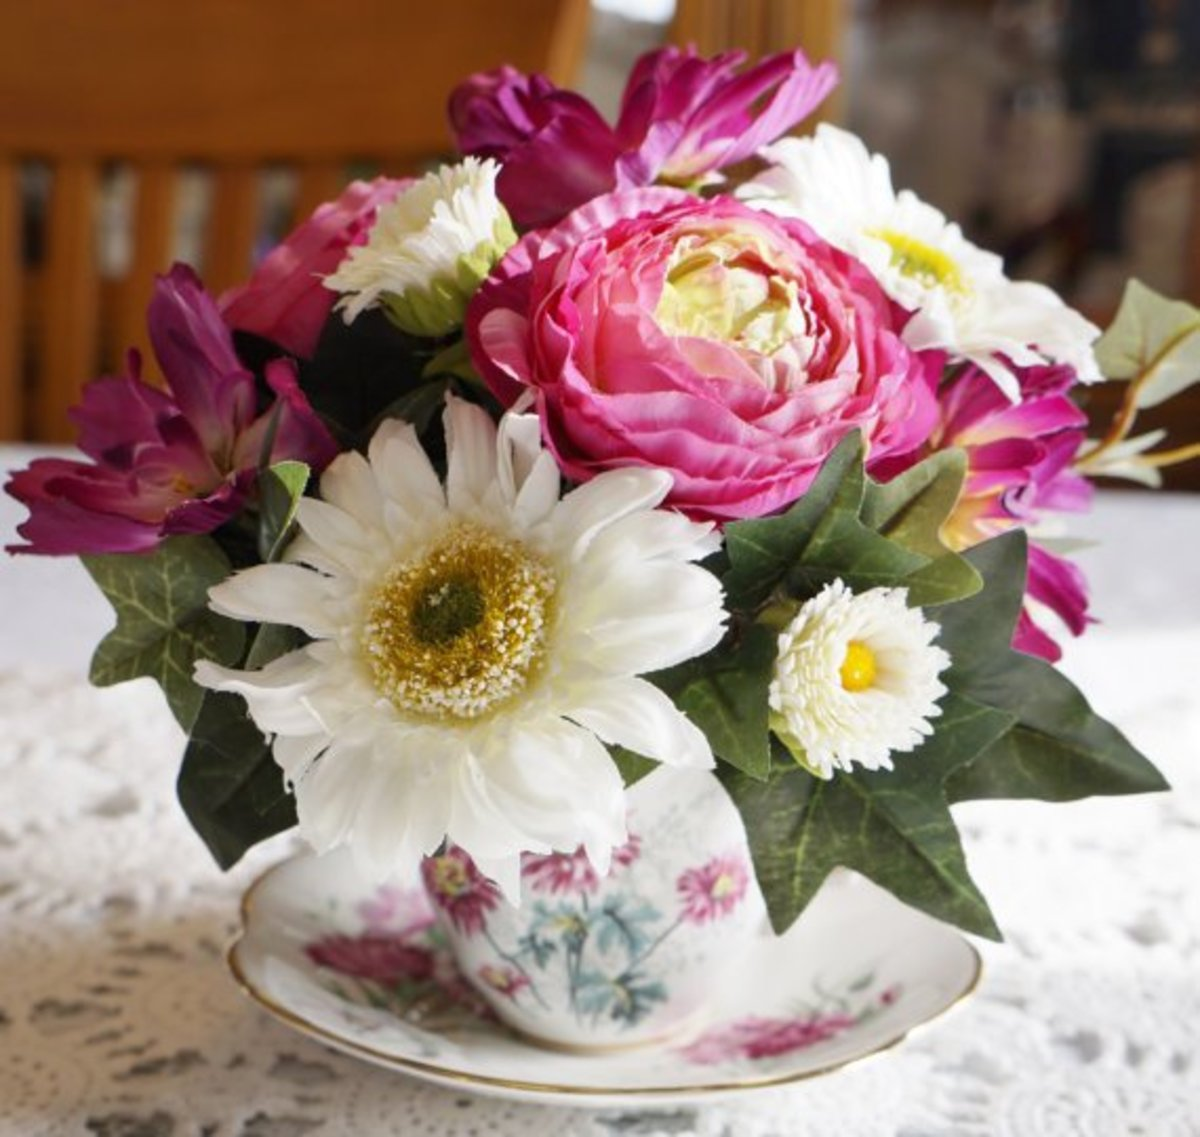 Teacup Flower Arrangements